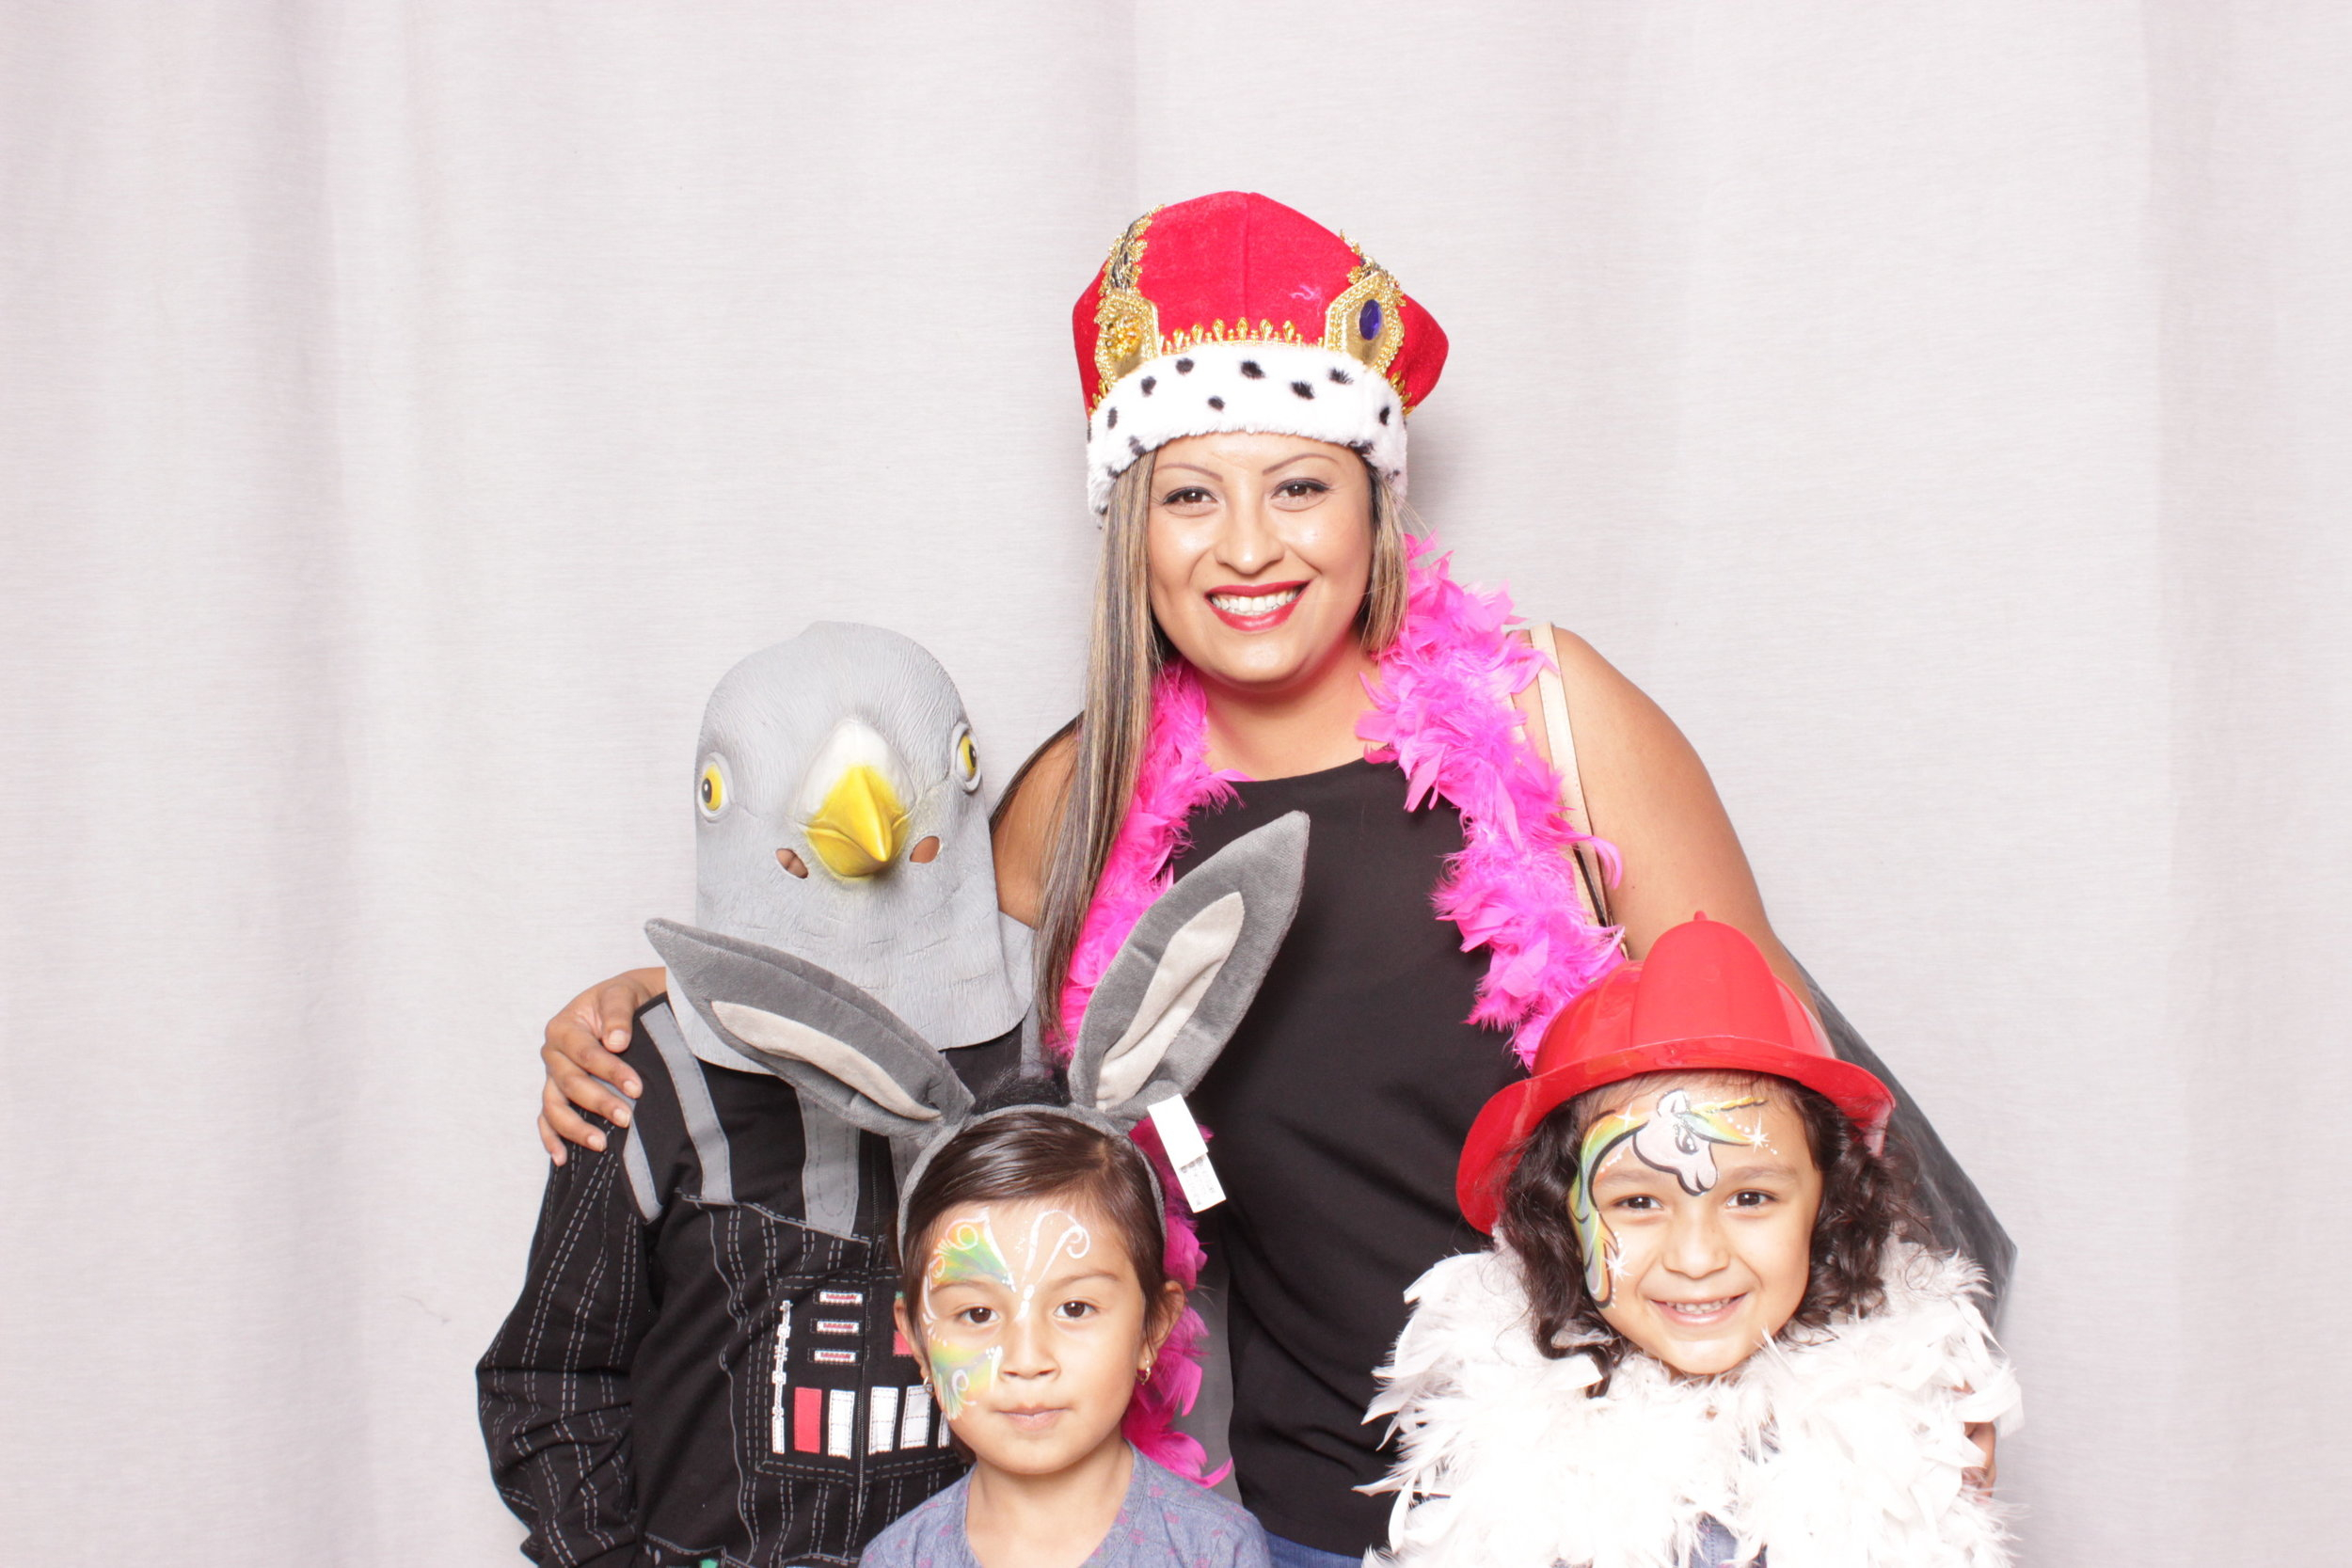 Chico-photo-booth-rental-complete-package